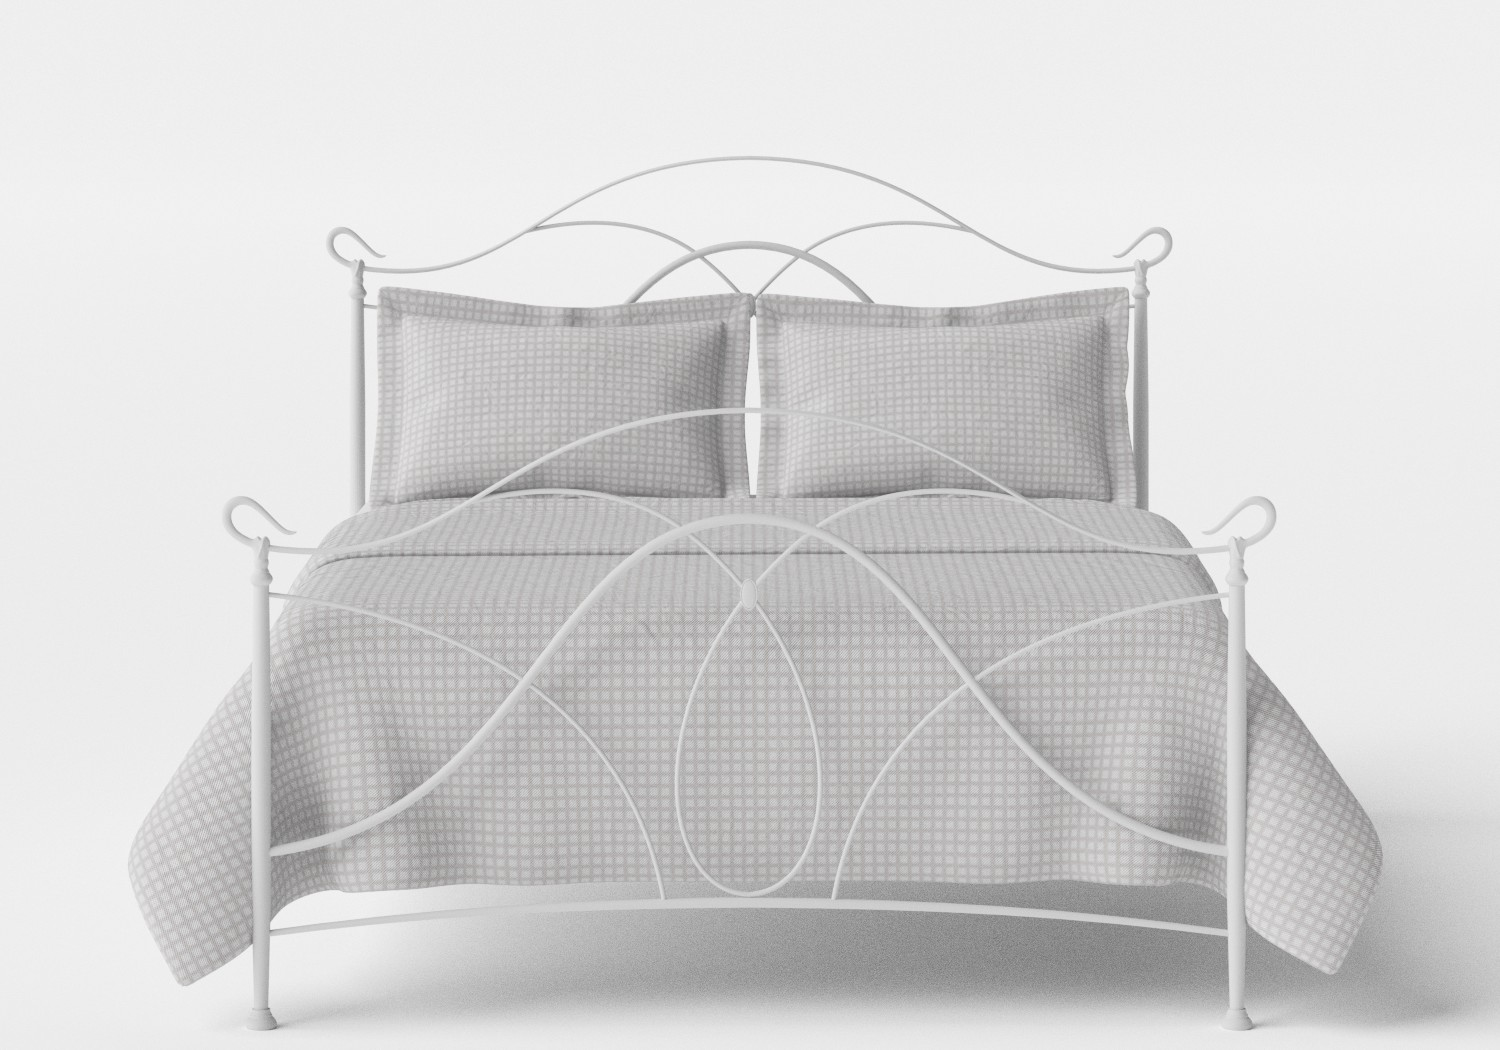 Ardo Iron/Metal Bed in Satin White